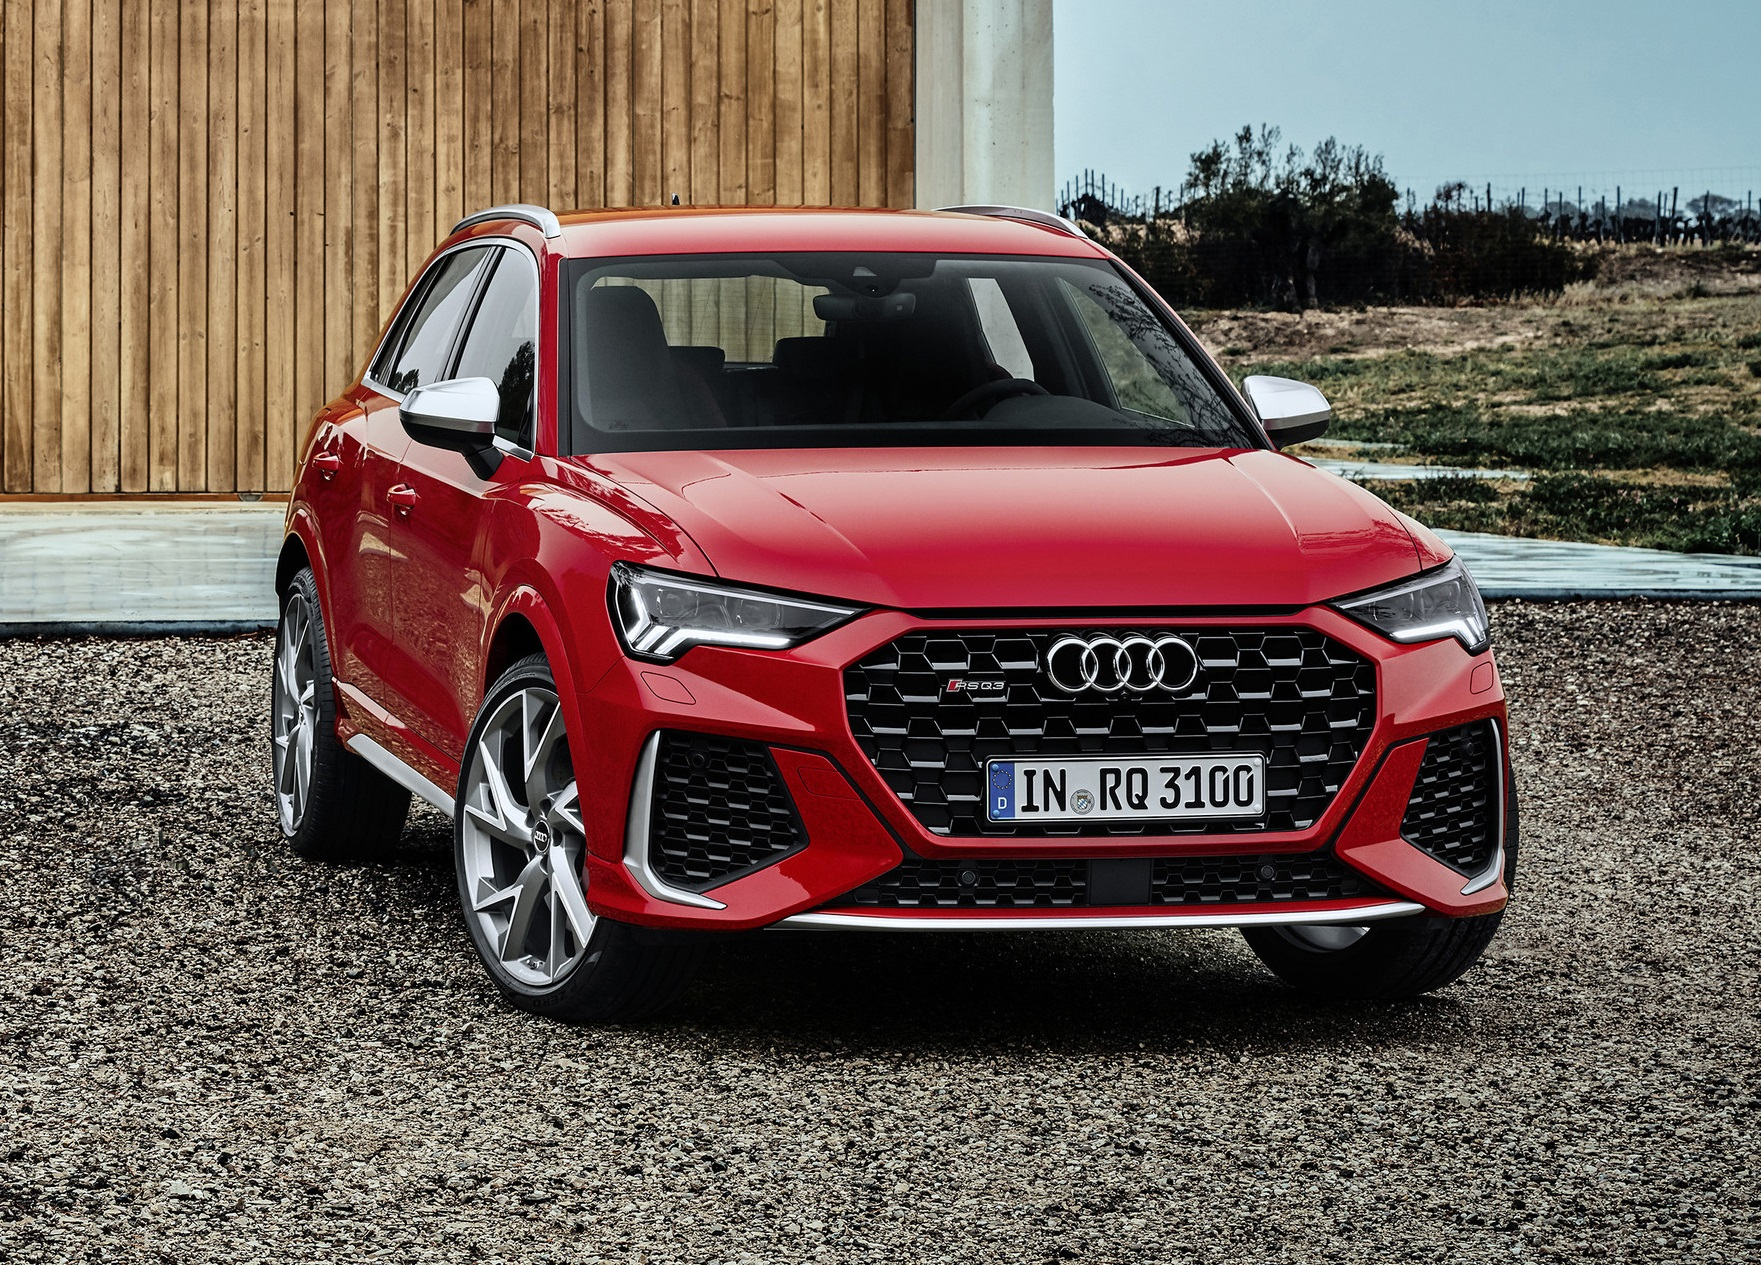 Red Audi RS Q3